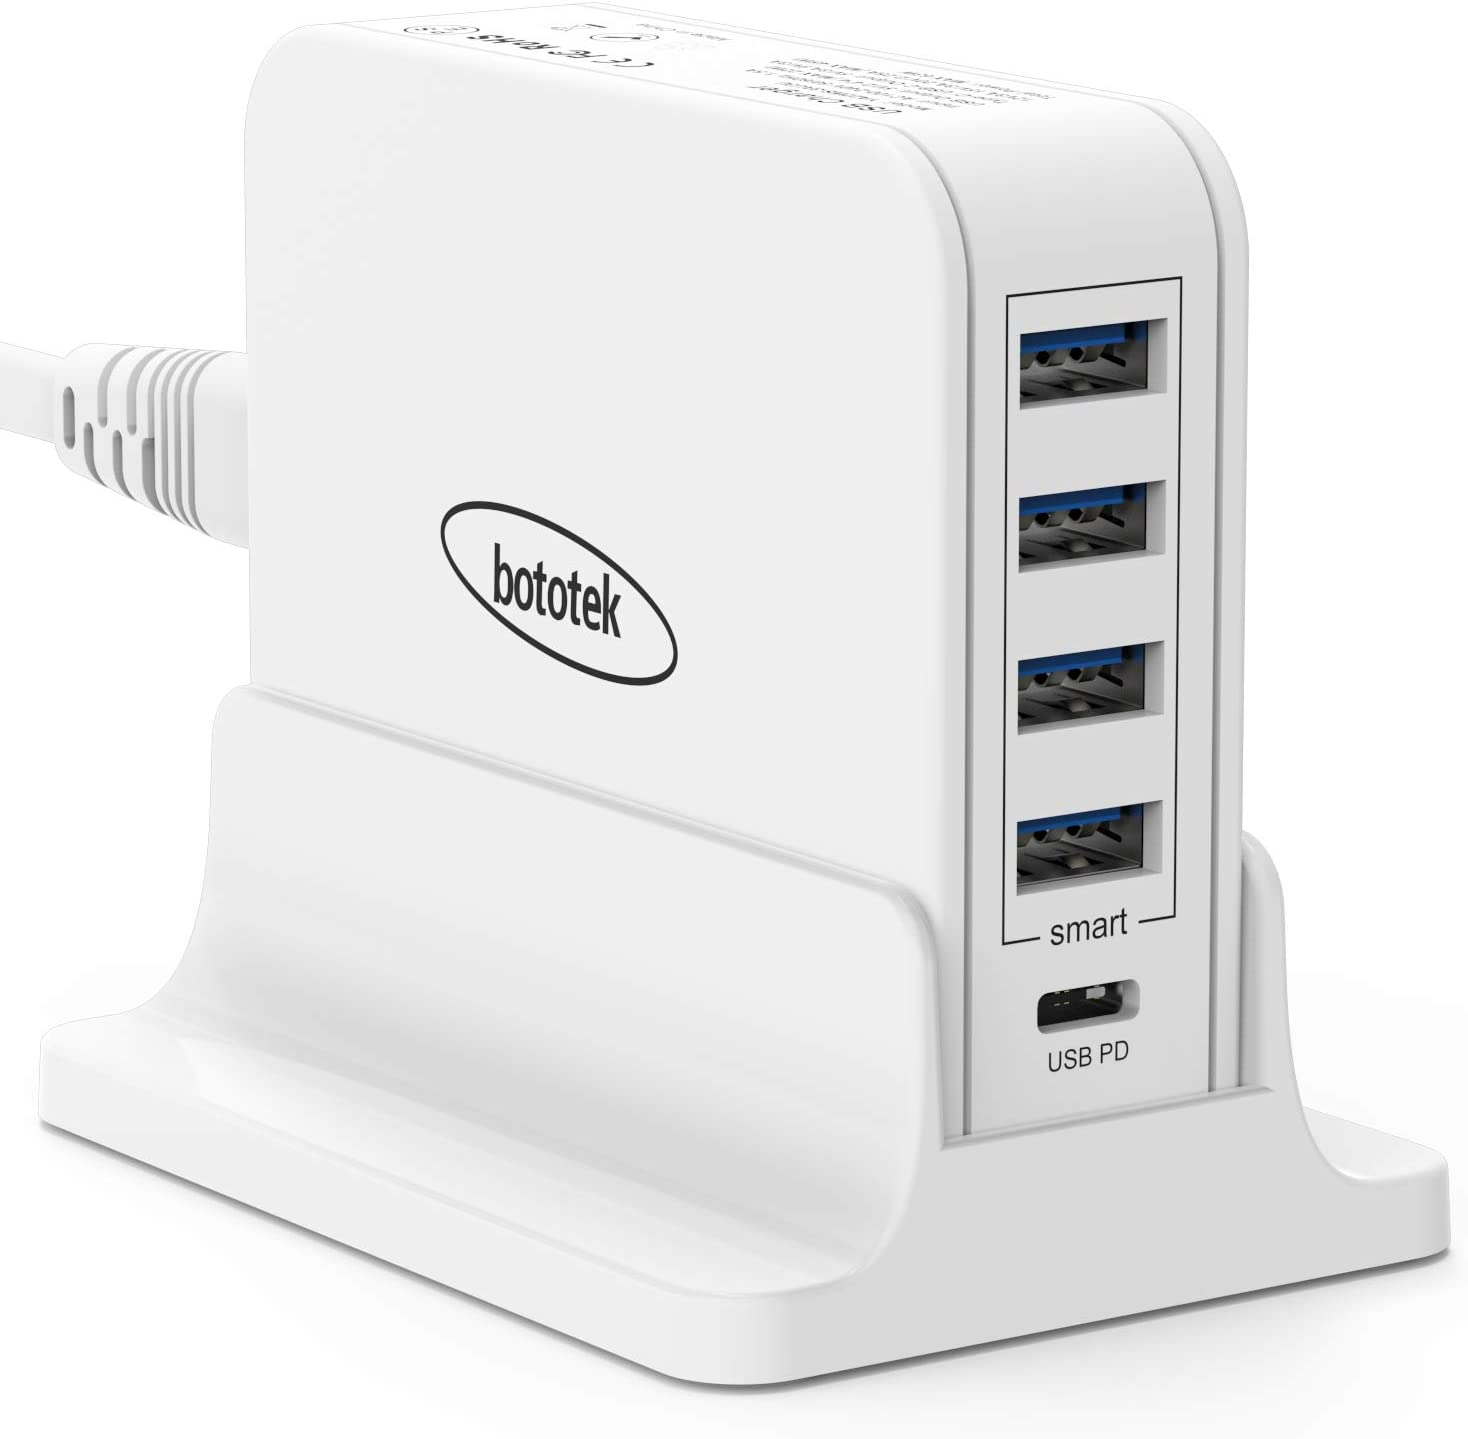 USB C Pd Charger, Bototek 63W 5-Port USB Desktop Charging Station with 45W Power Delivery Port, Compatible iPhone 11 Pro Max, Ipad Pro, MacBook Pro Air, Galaxy S20 S10 S9 and More-White